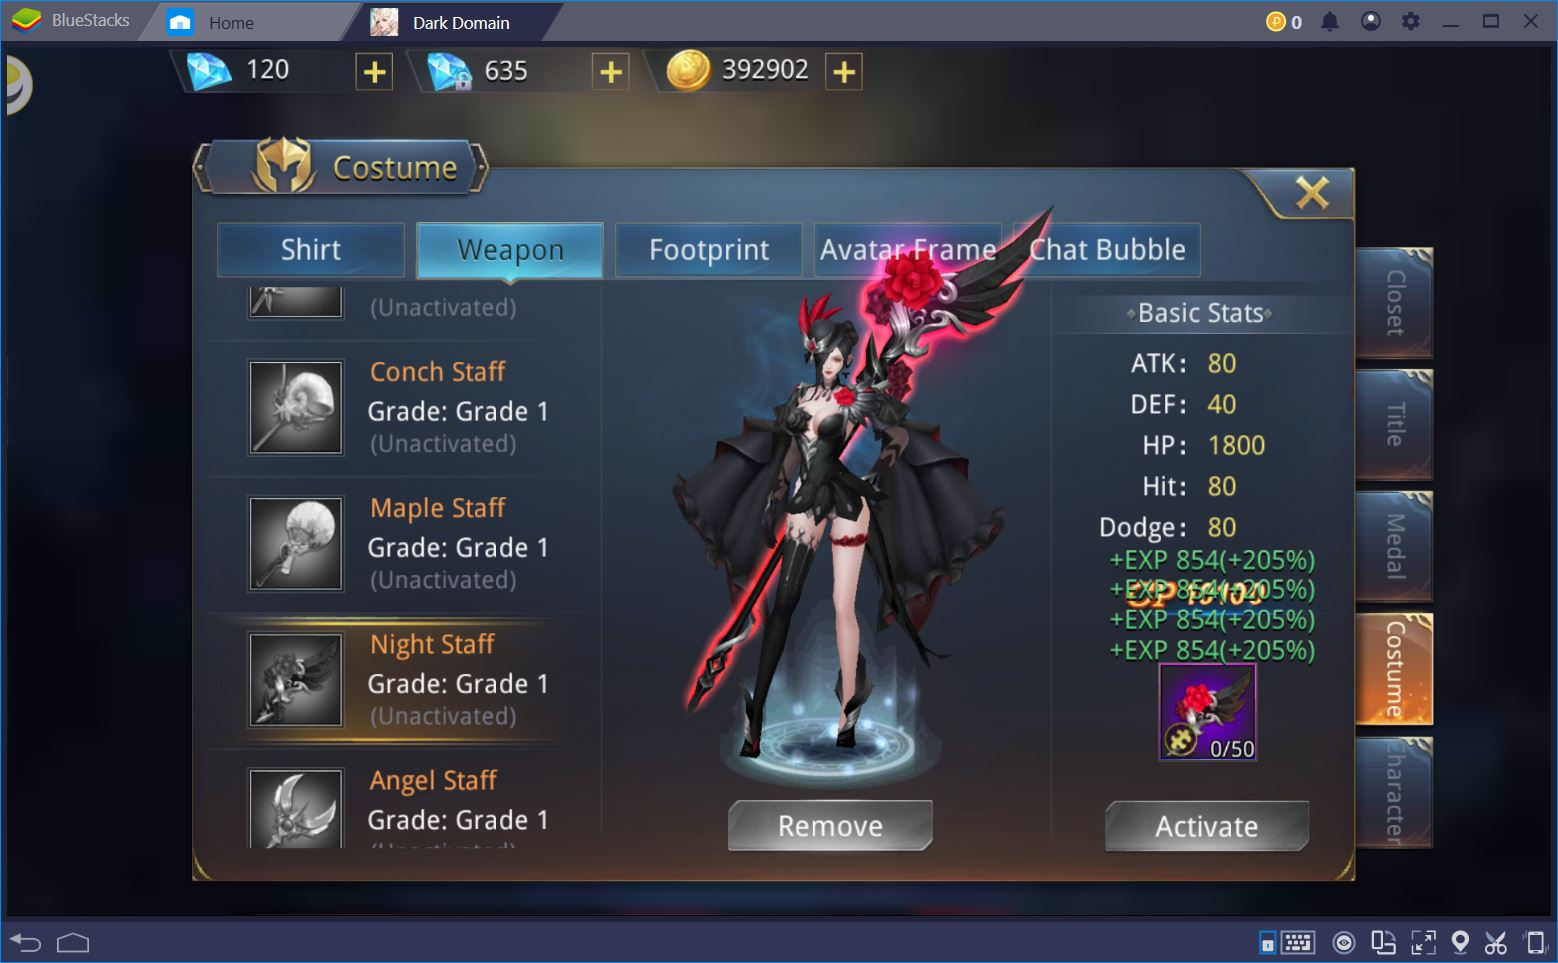 Take Over the World of Dark Domain with BlueStacks